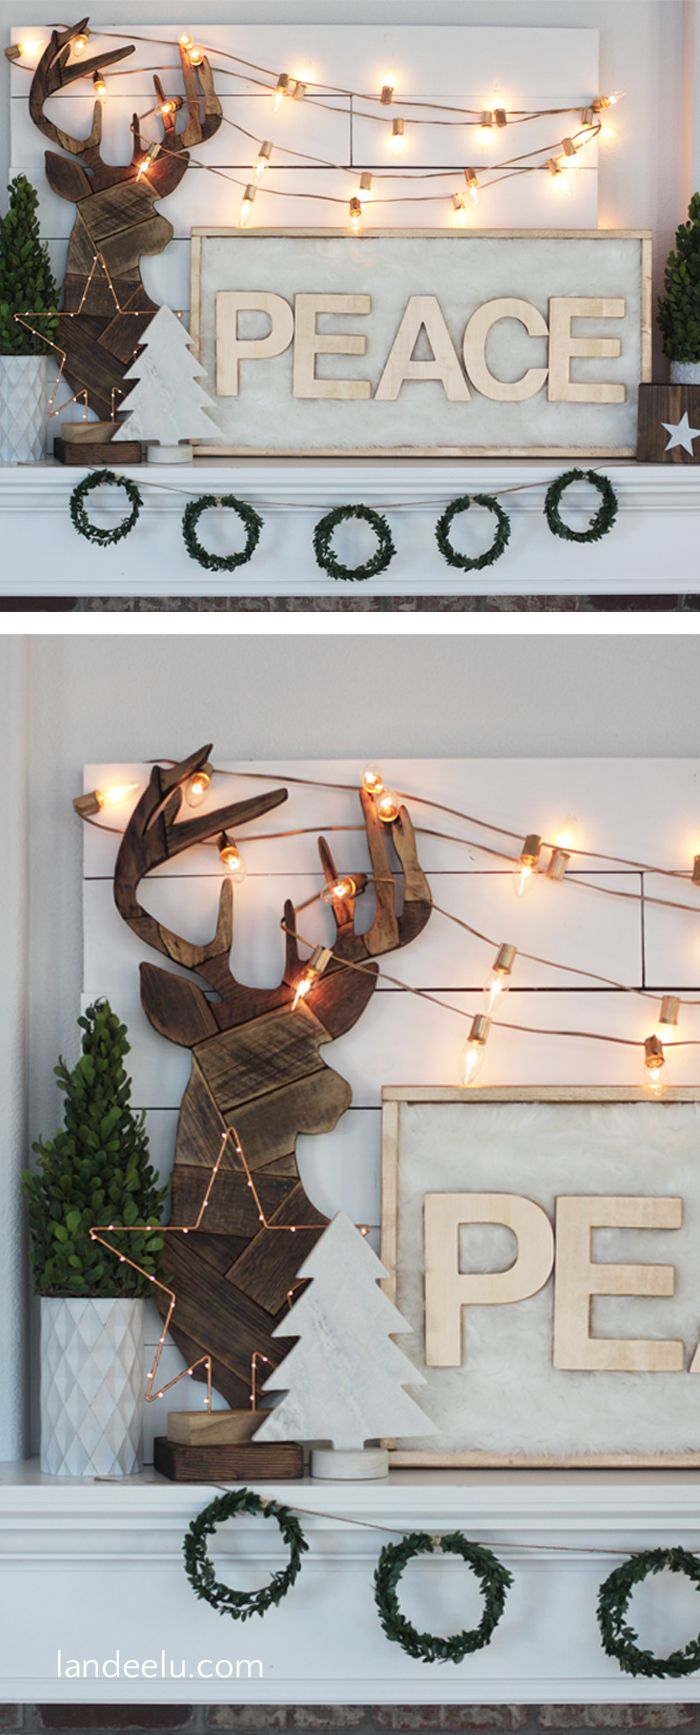 A neutral, gold, white and wood tones DIY Christmas mantel that is also festive and cozy! A beautiful combination of textures and natural elements.